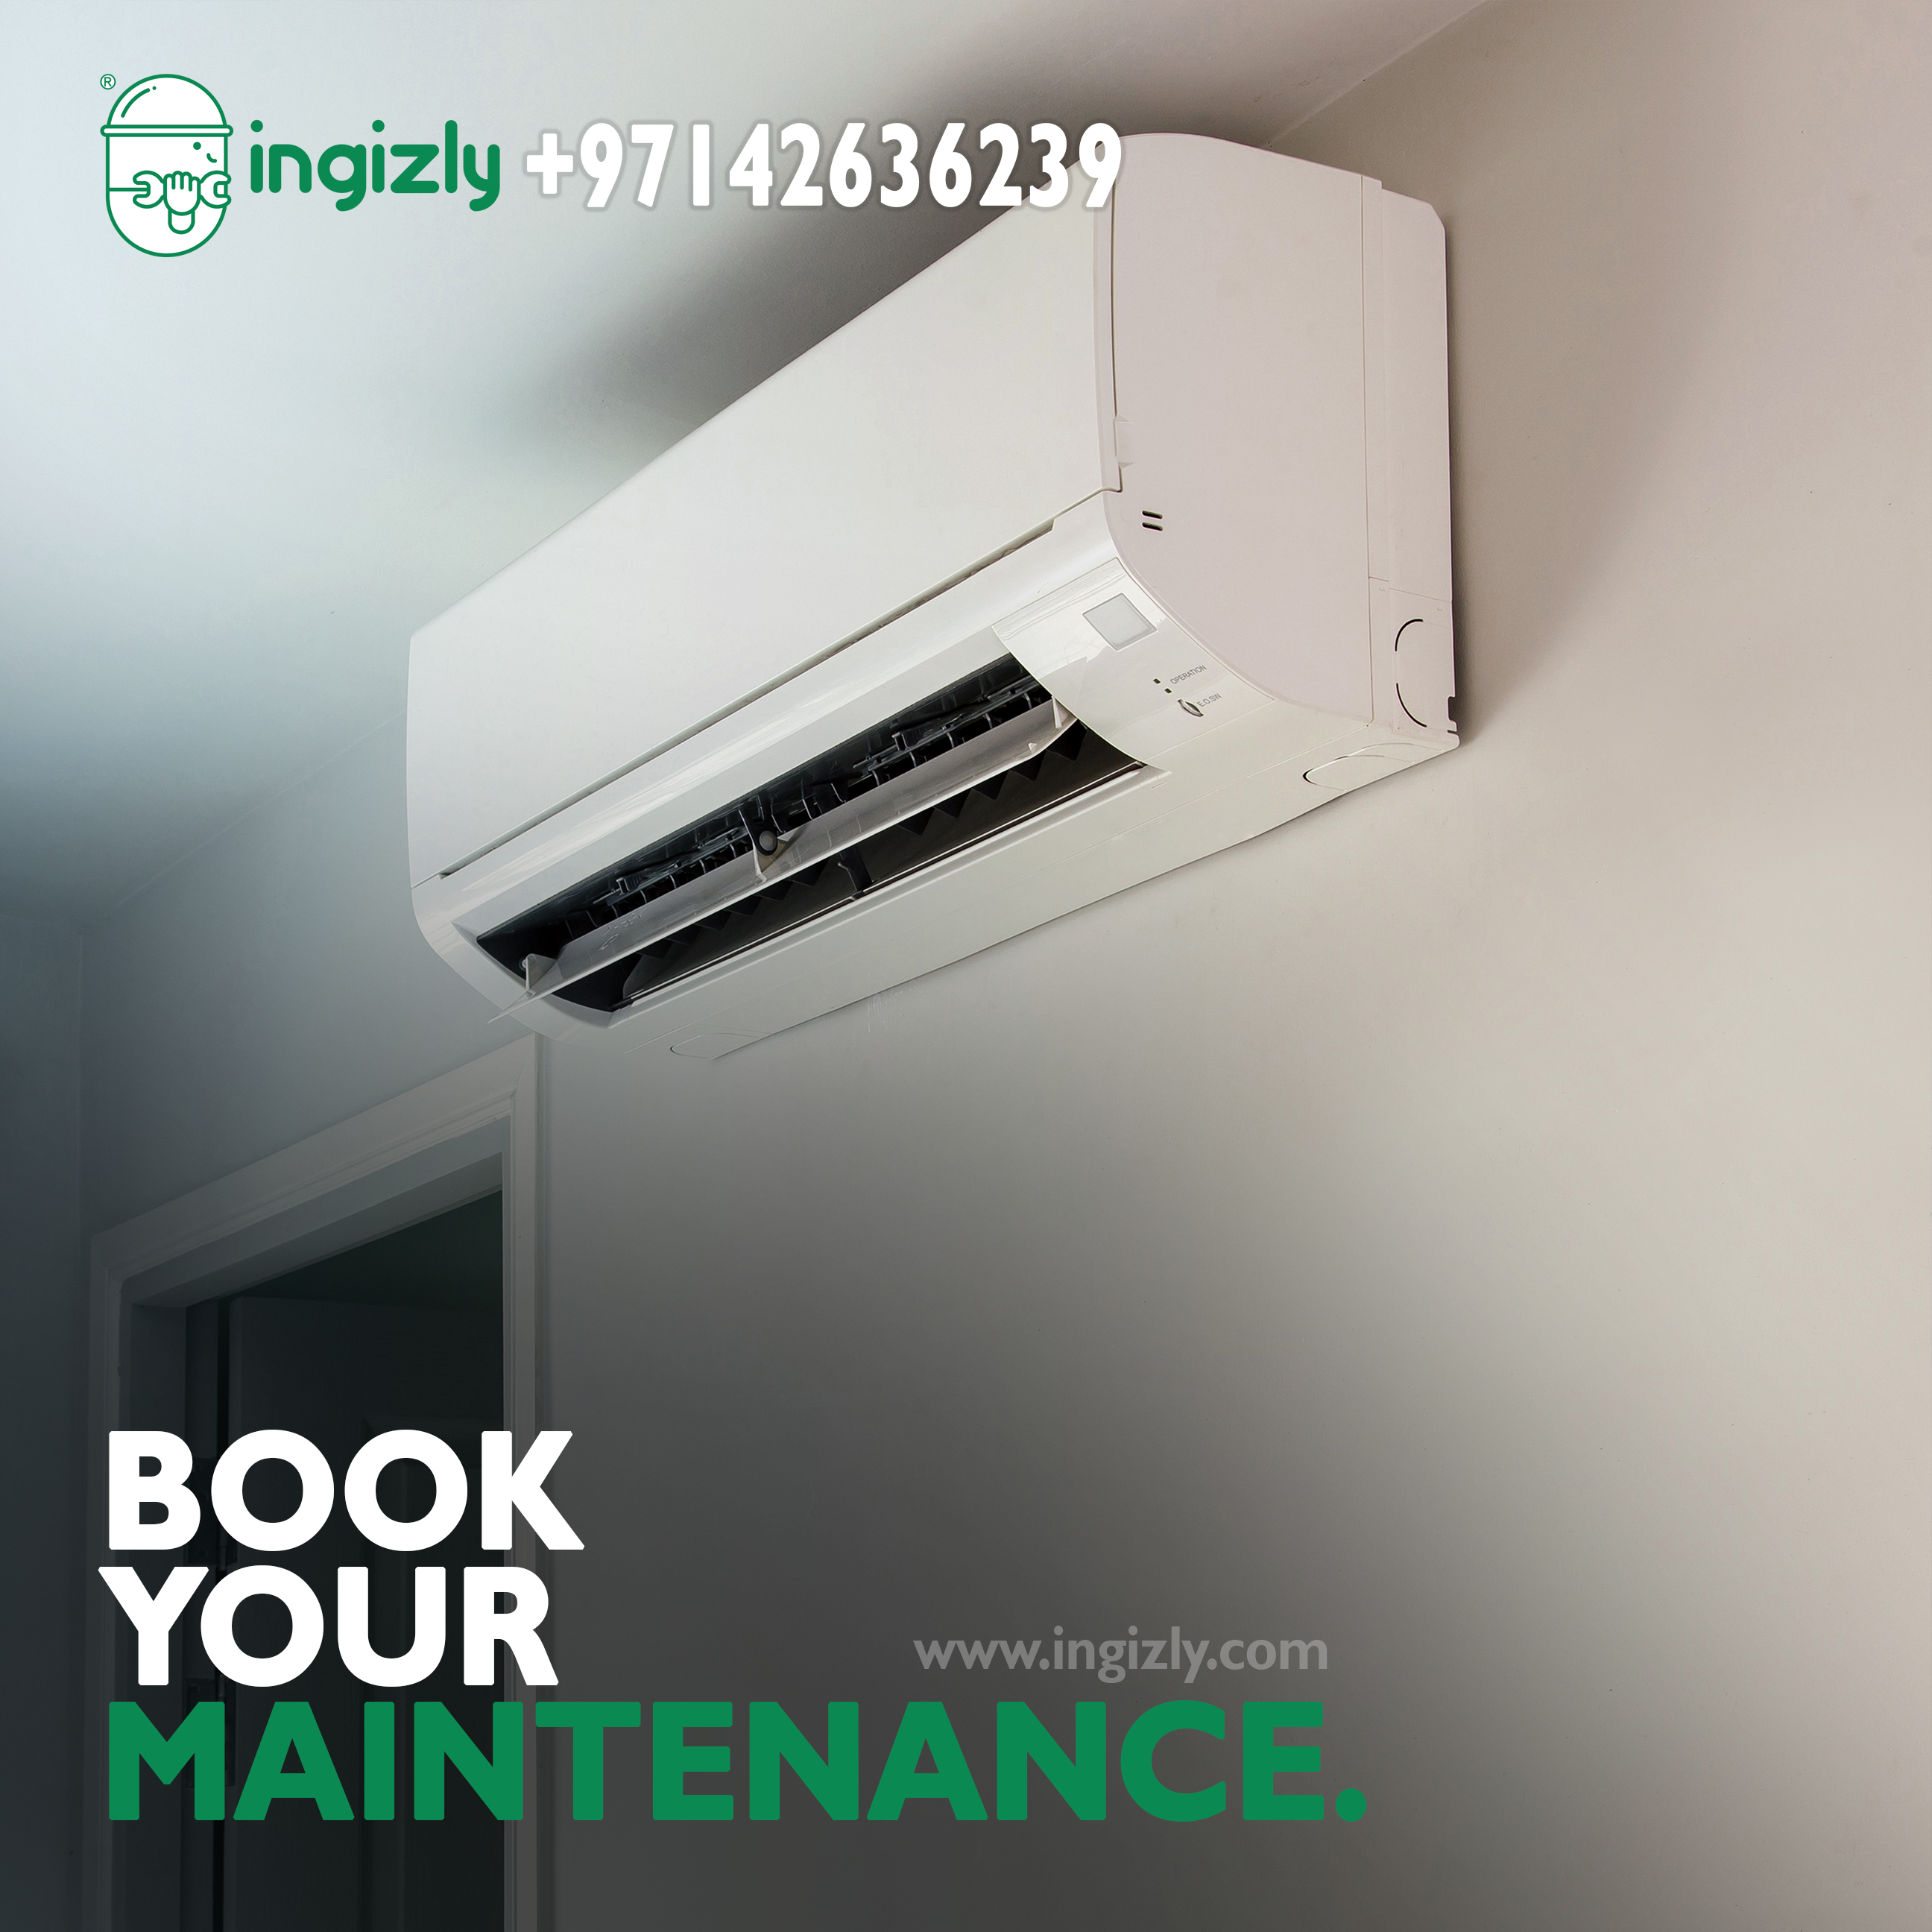 summer is coming! looking for air conditioning repair service with